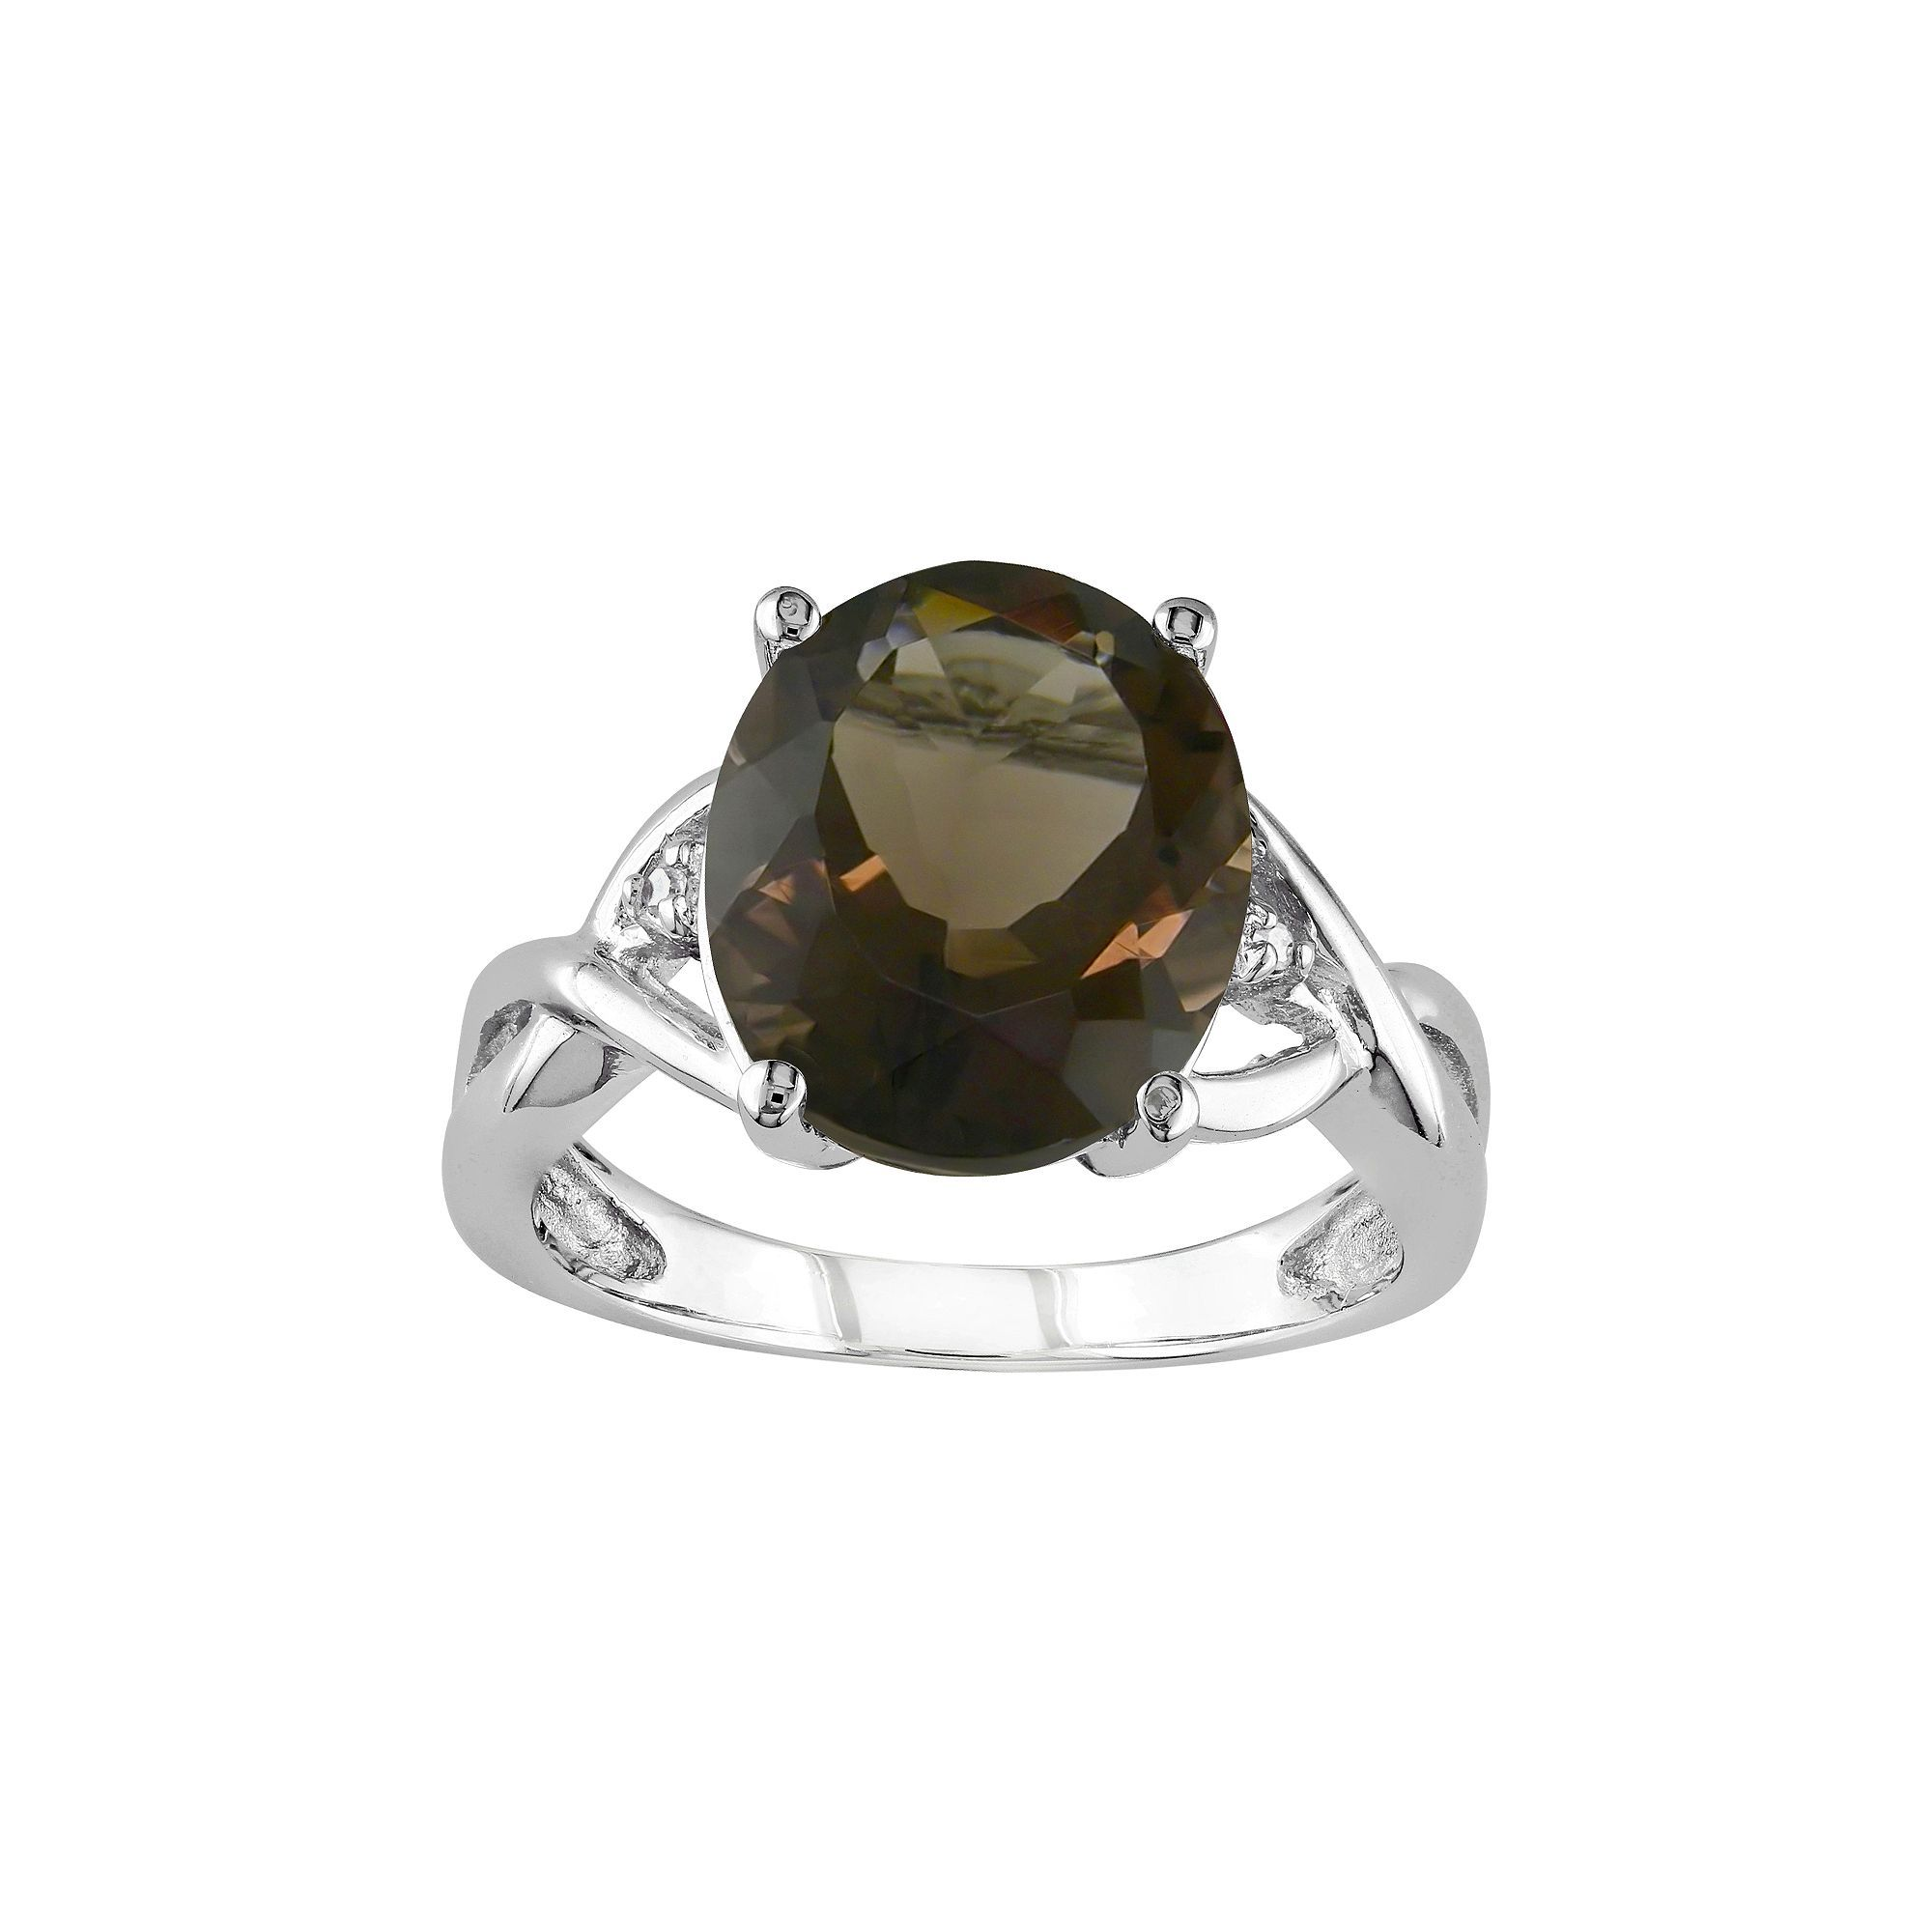 quartz smoky fashion axis in limited x ring matrix jewelry js product rings engagement intenebris by